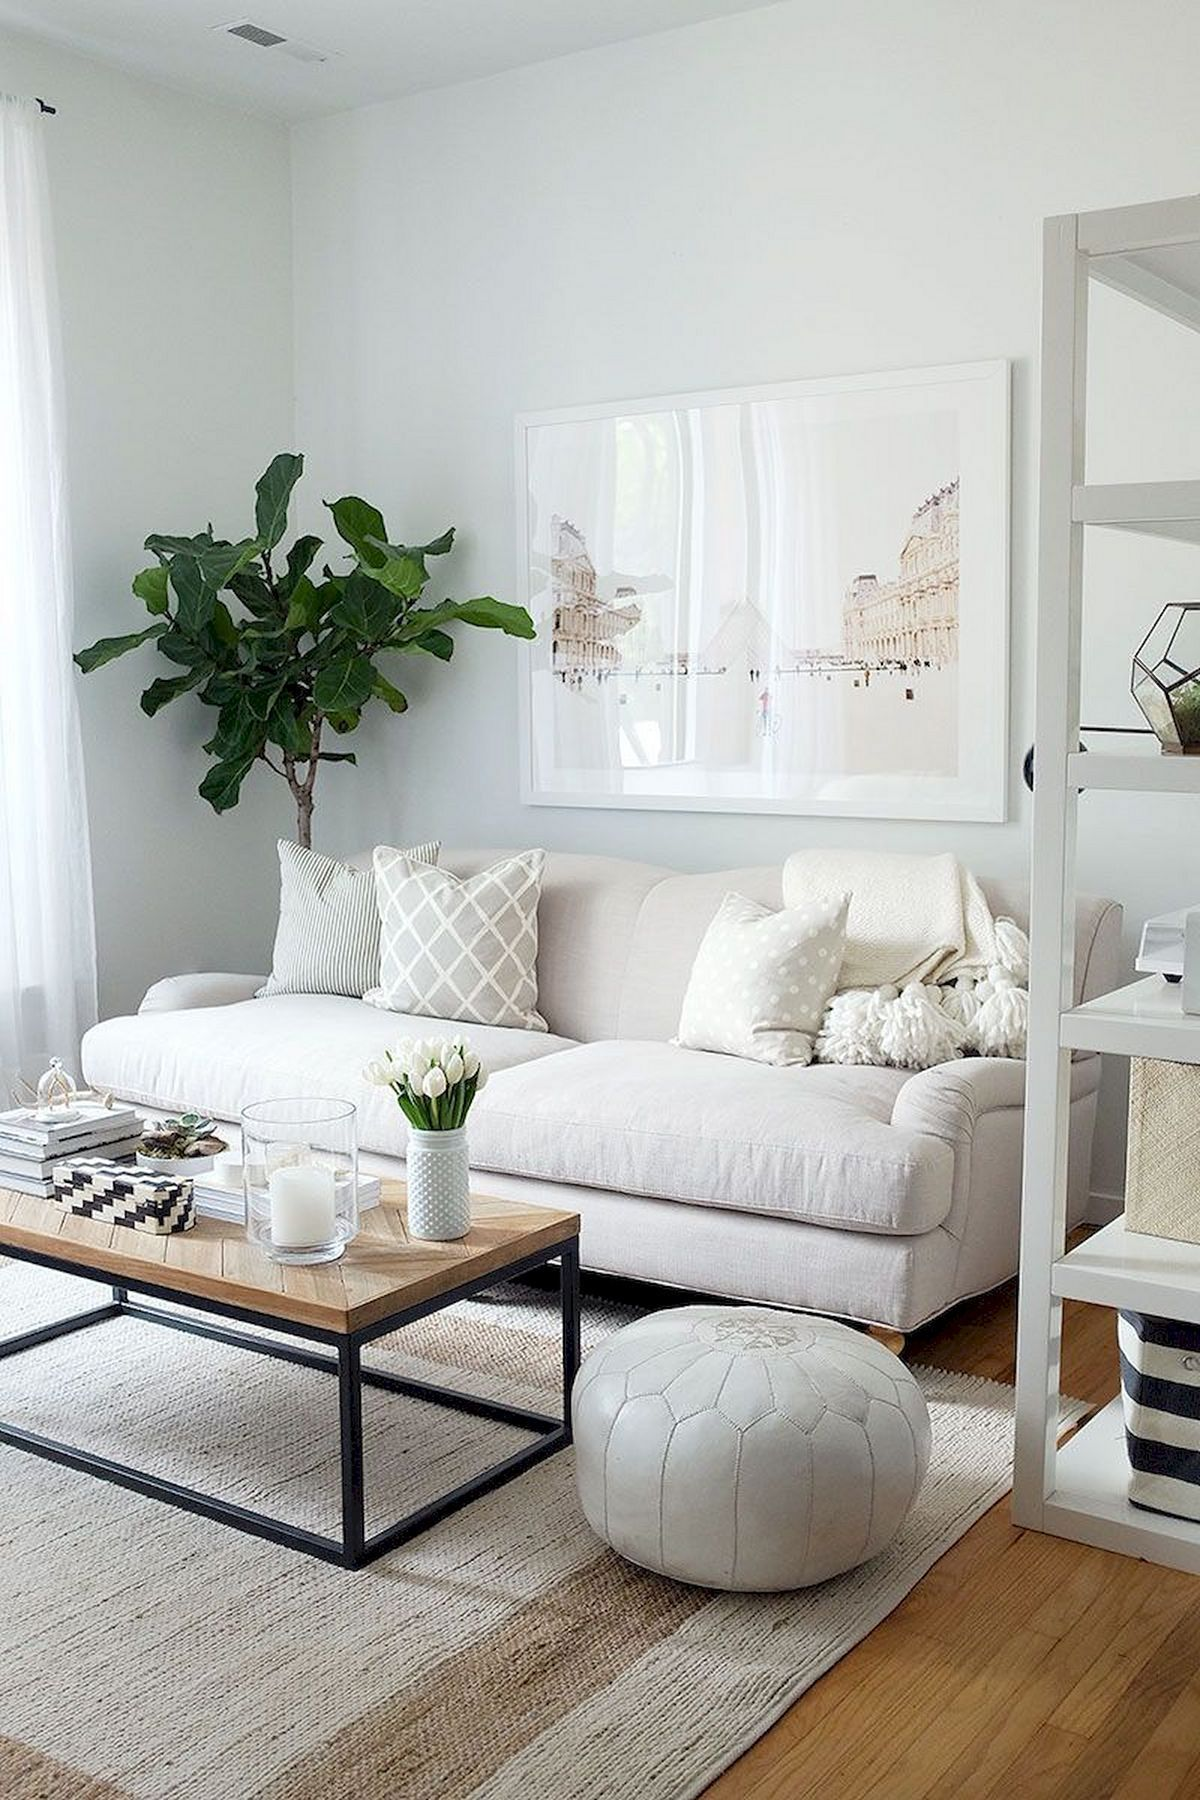 15 Best Perfect Small Living Room Decoration You Have to Know #decoratingsmalllivingroom